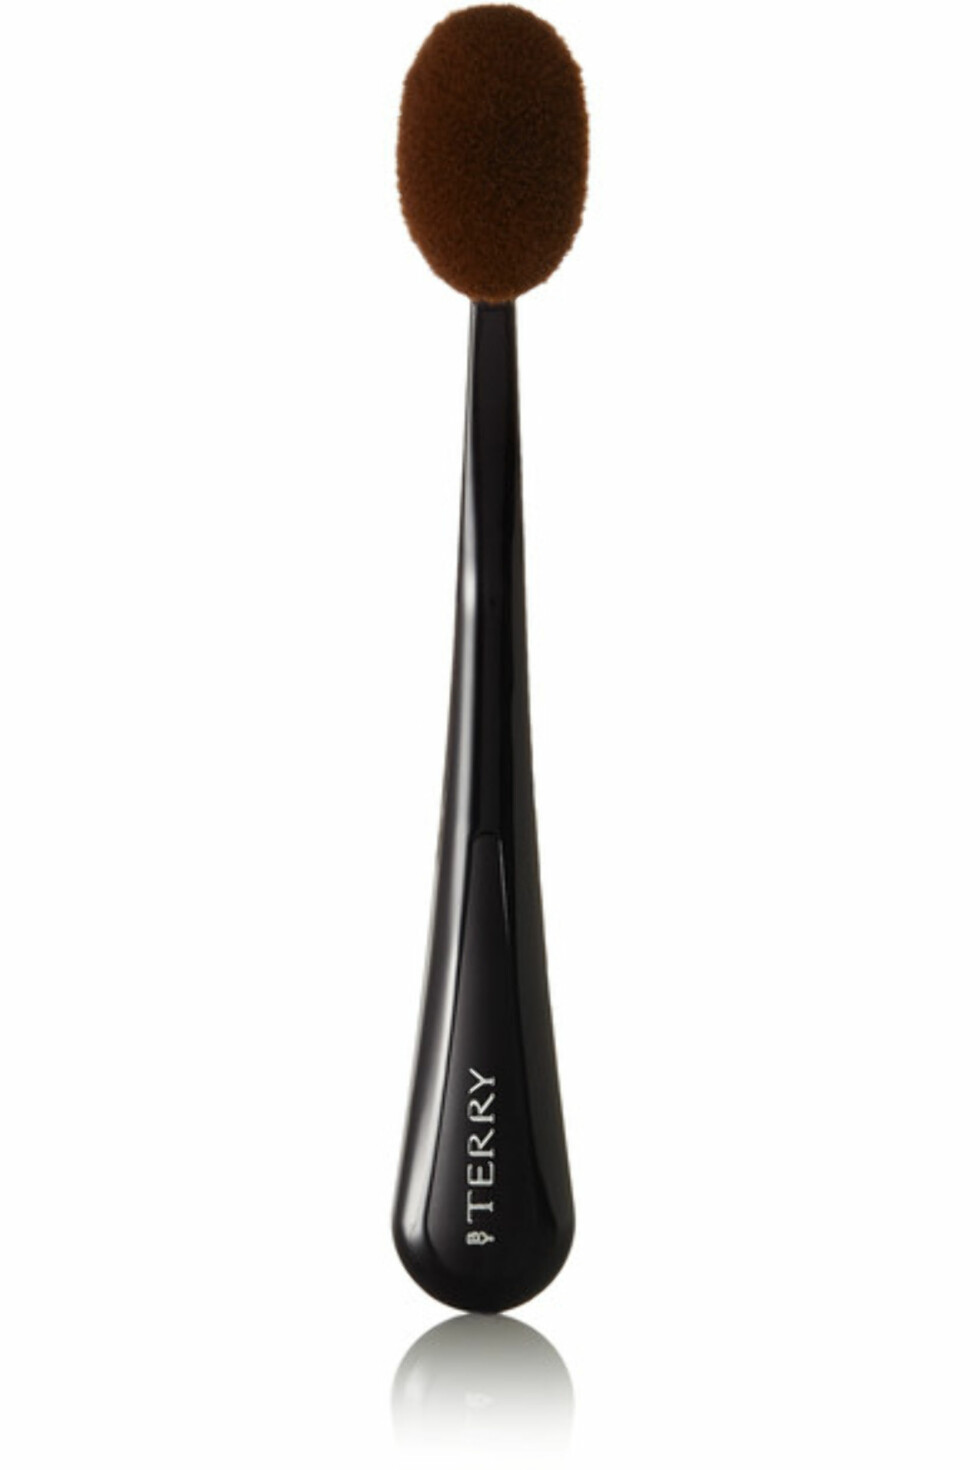 Foundationbørste fra By Terry via Net-a-porter.com | kr 482 | https://www.net-a-porter.com/no/en/product/681272/By_Terry/soft-buffer-foundation-brush